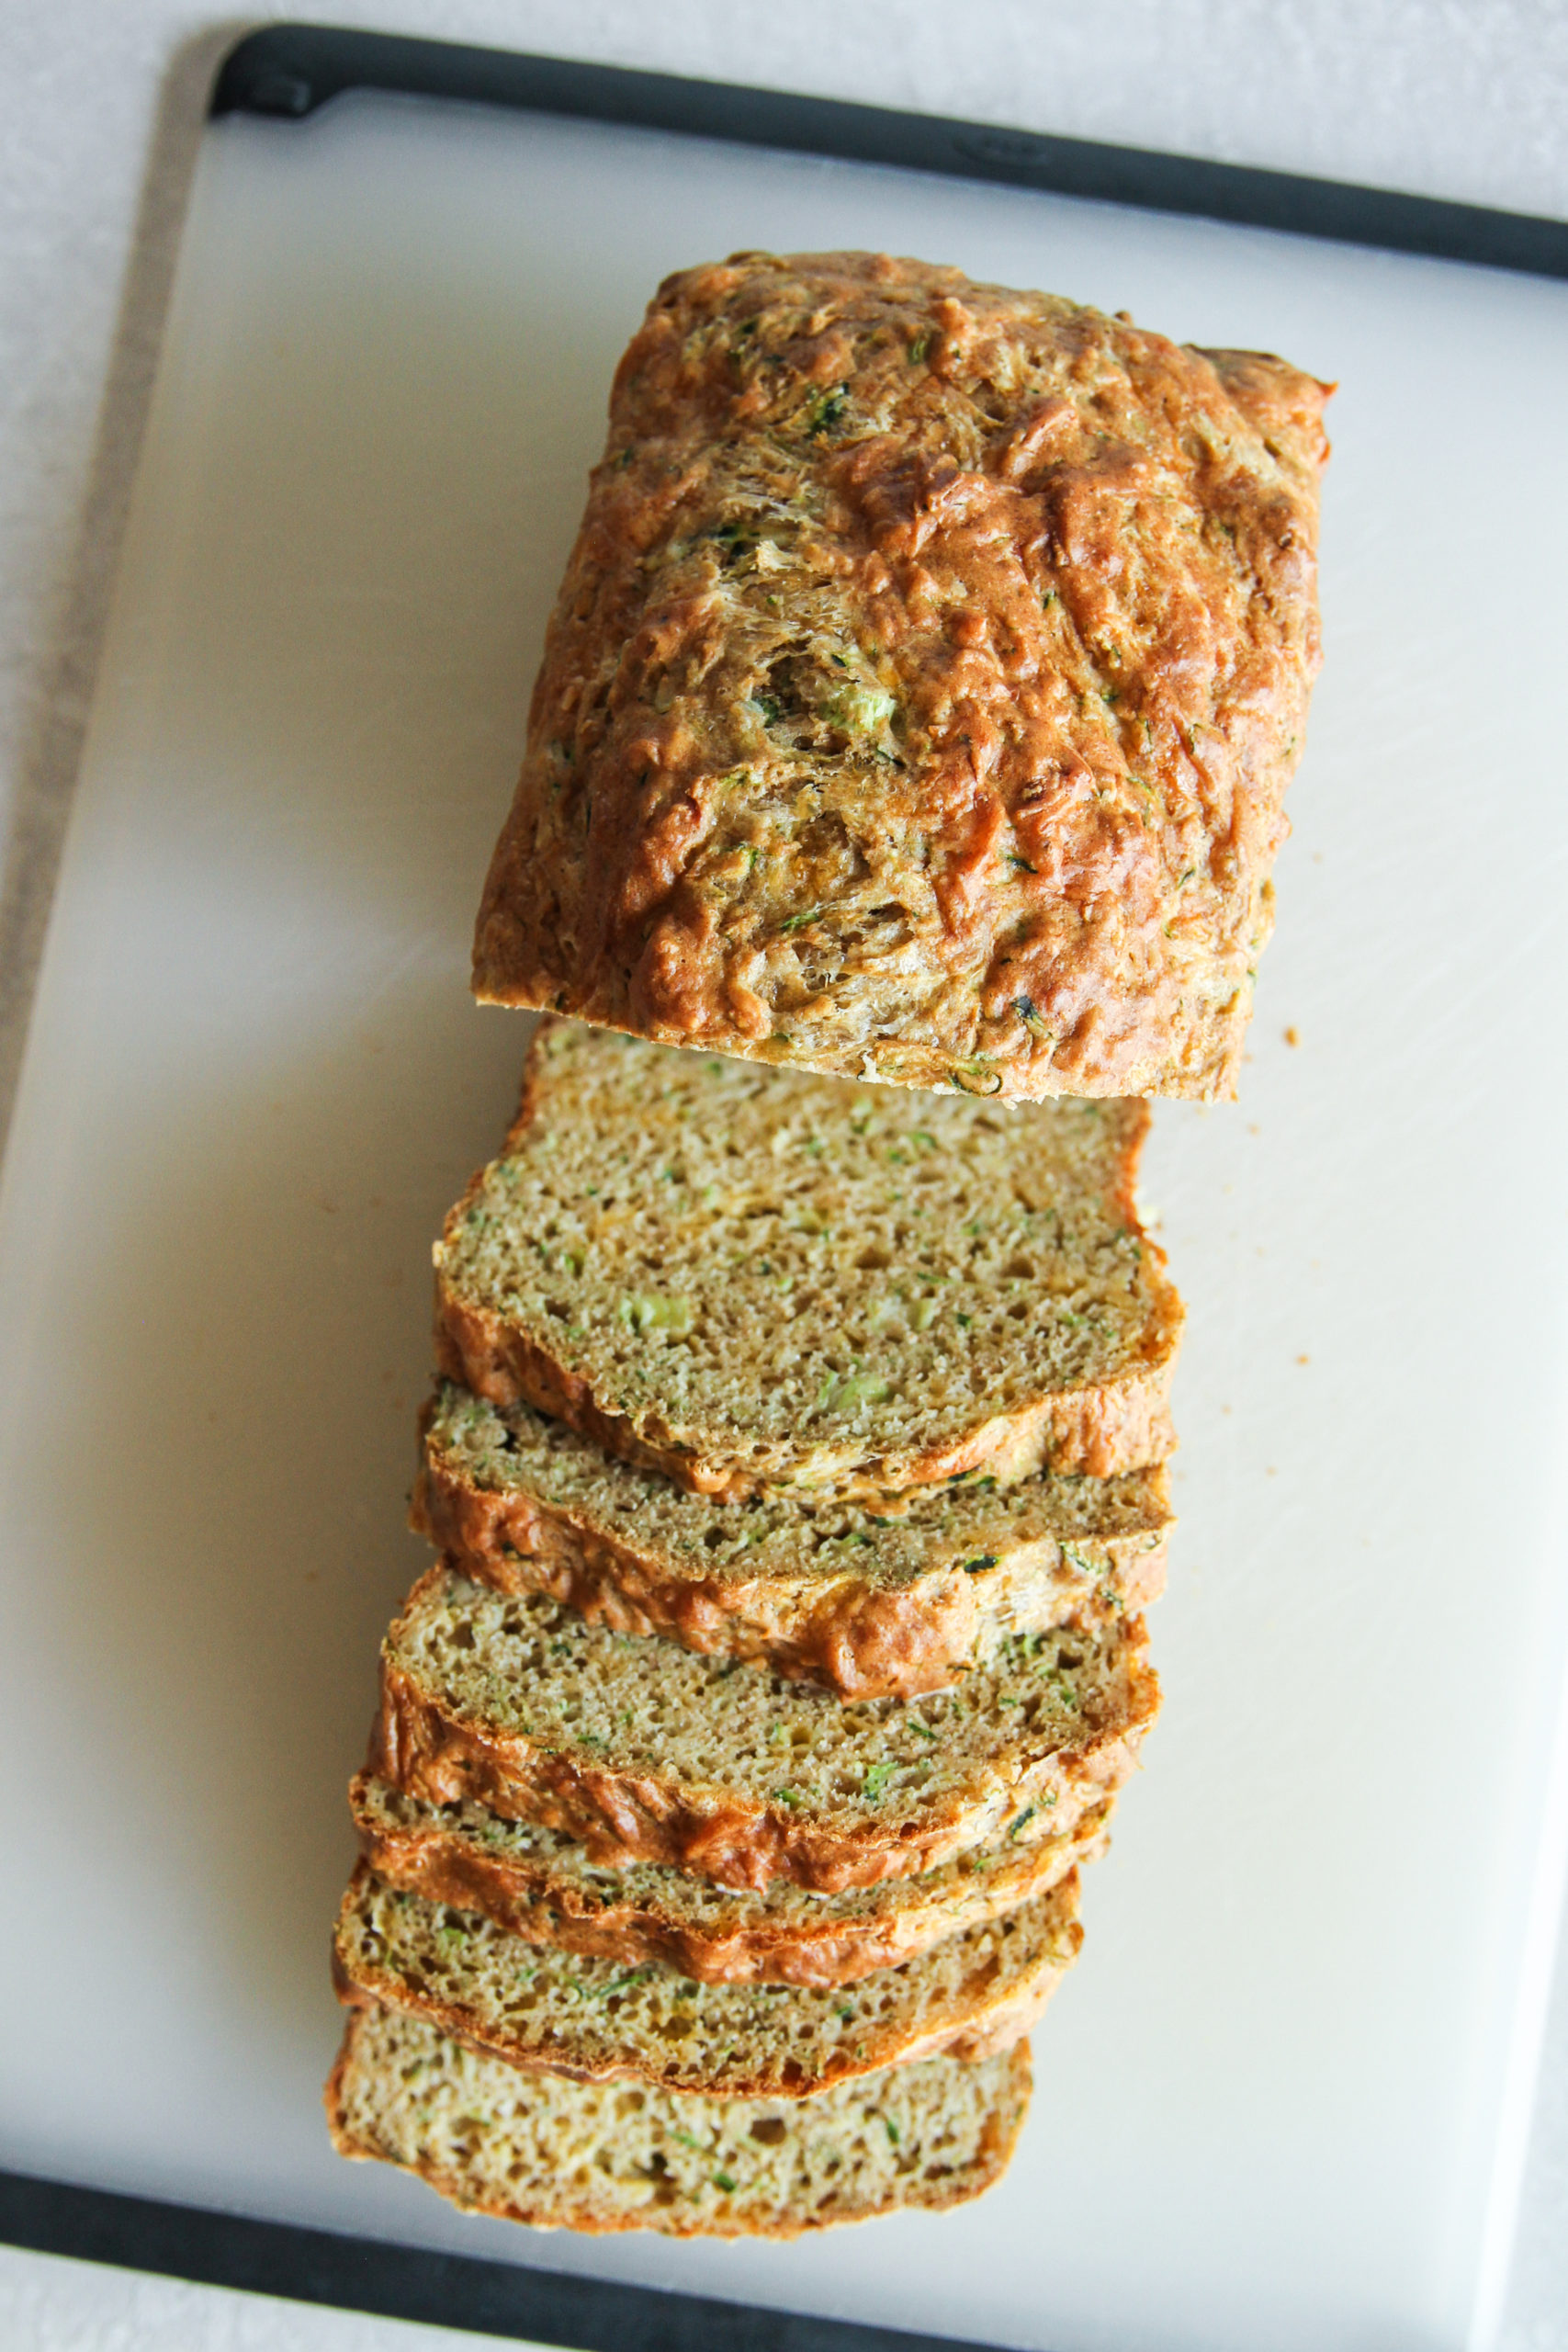 The best recipe for Zucchini cheddar bread